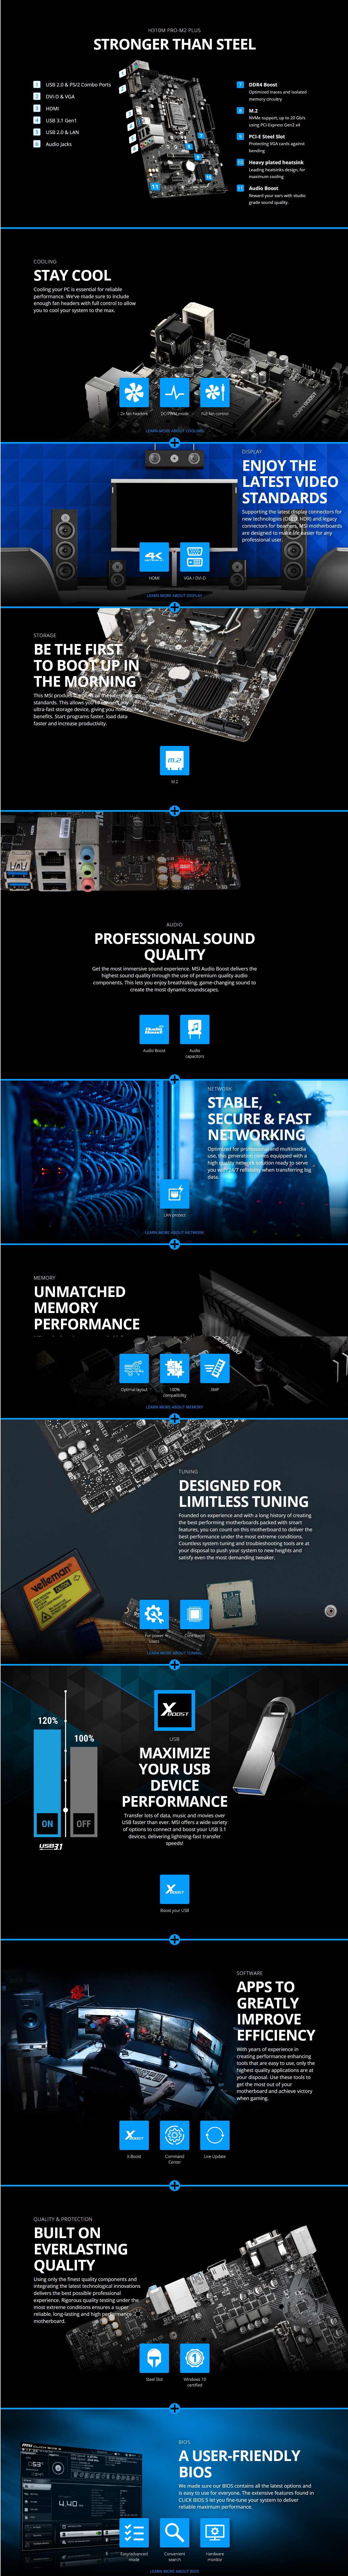 A large marketing image providing additional information about the product MSI H310M Pro-M2 Plus LGA1151-CL mATX Desktop Motherboard - Additional alt info not provided